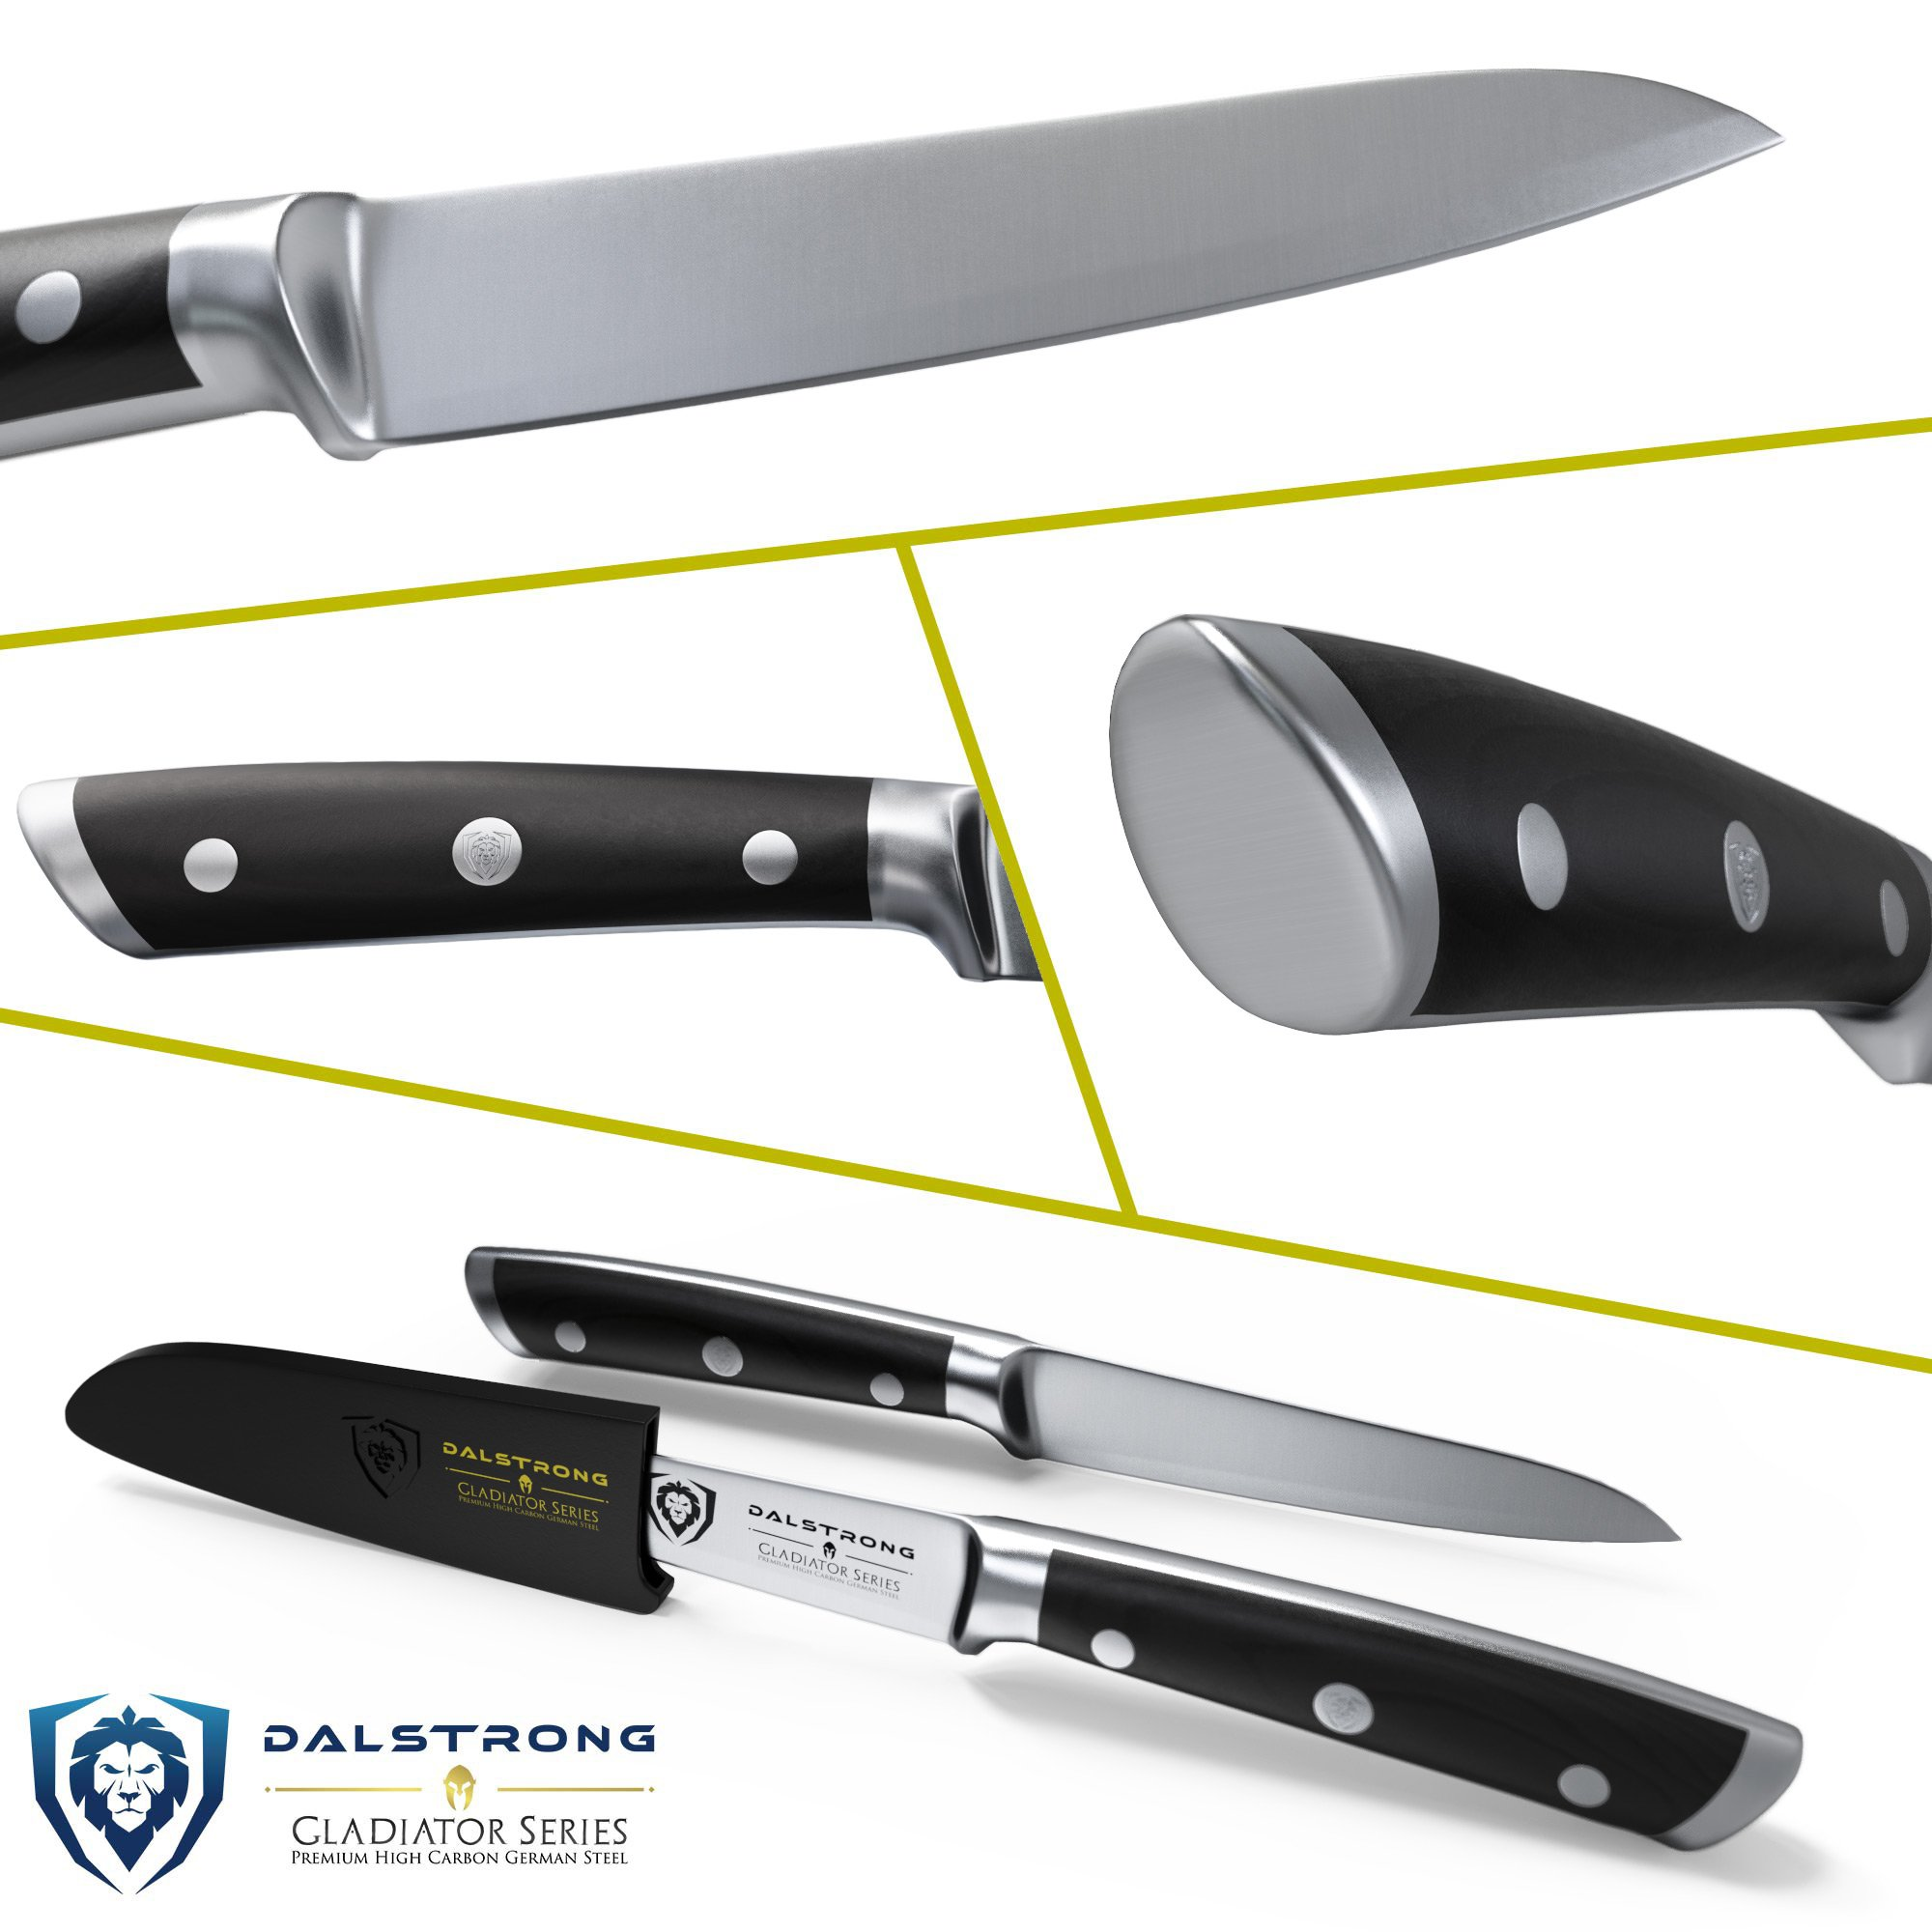 DALSTRONG Paring Knife - Gladiator Series Paring Knife - German HC Steel - 3.75'' by Dalstrong (Image #2)